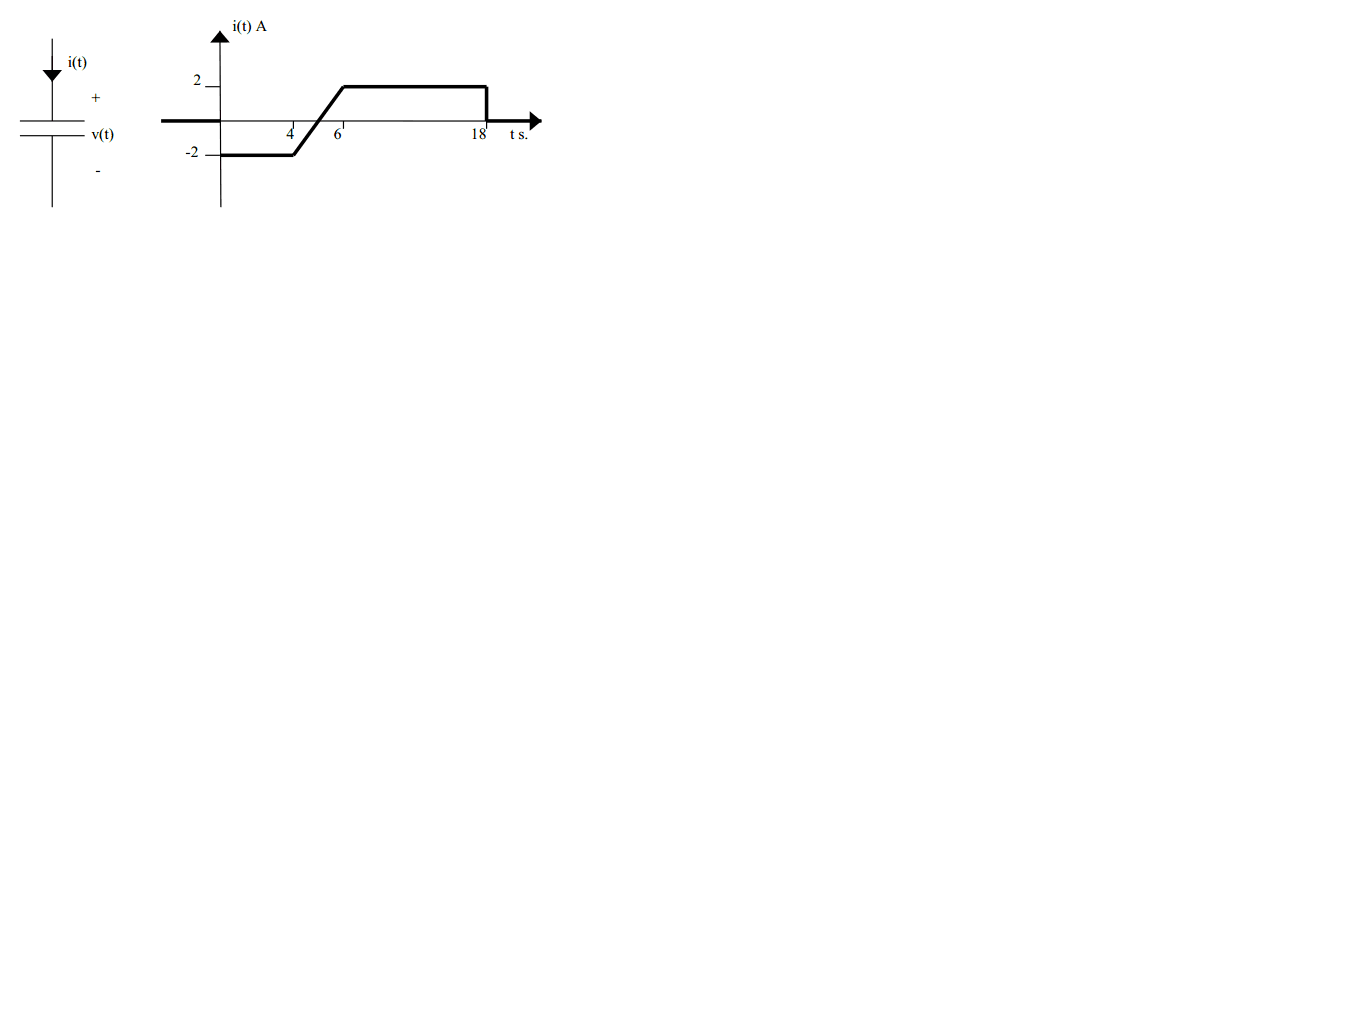 Sketch the voltage graph. Find